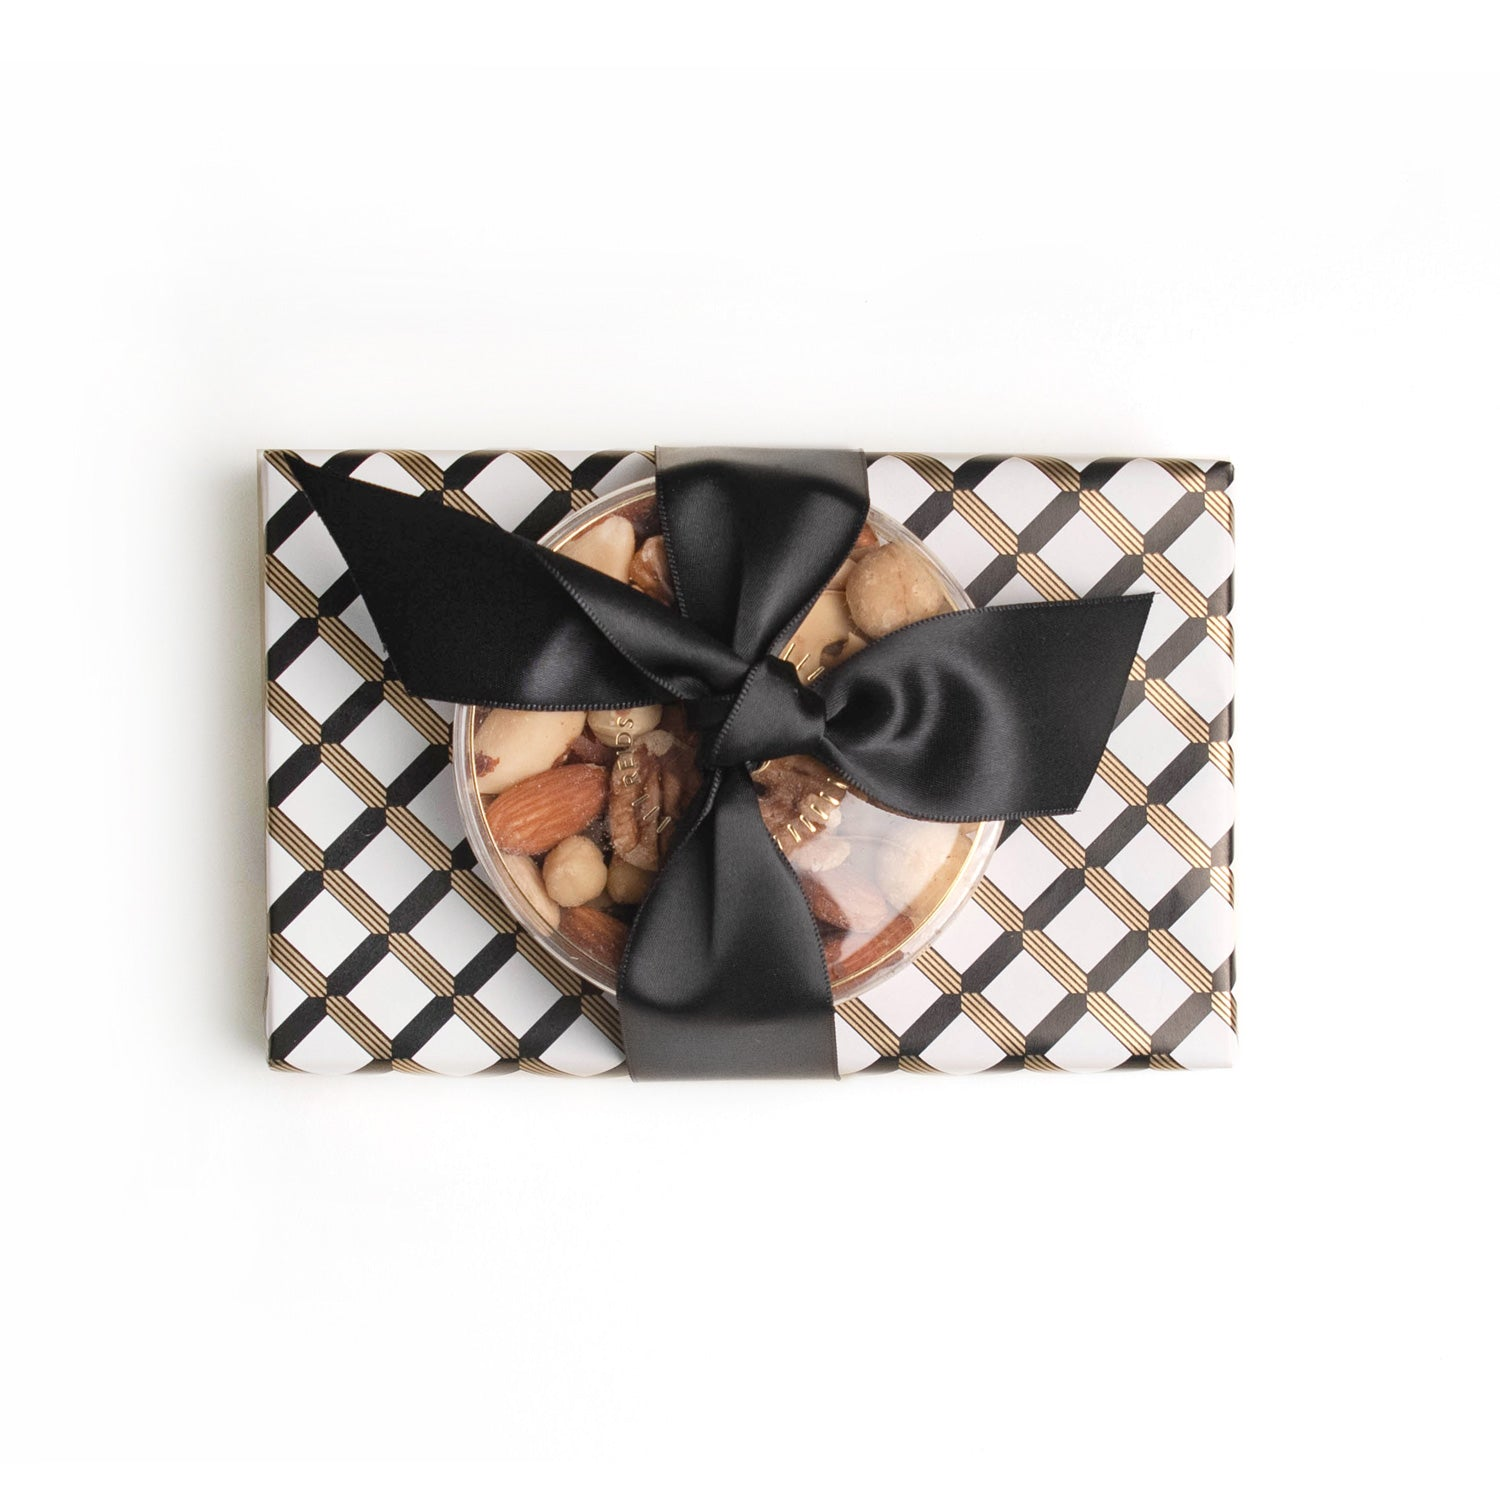 Black, gold and white wrapping paper. Tied with a satin black ribbon